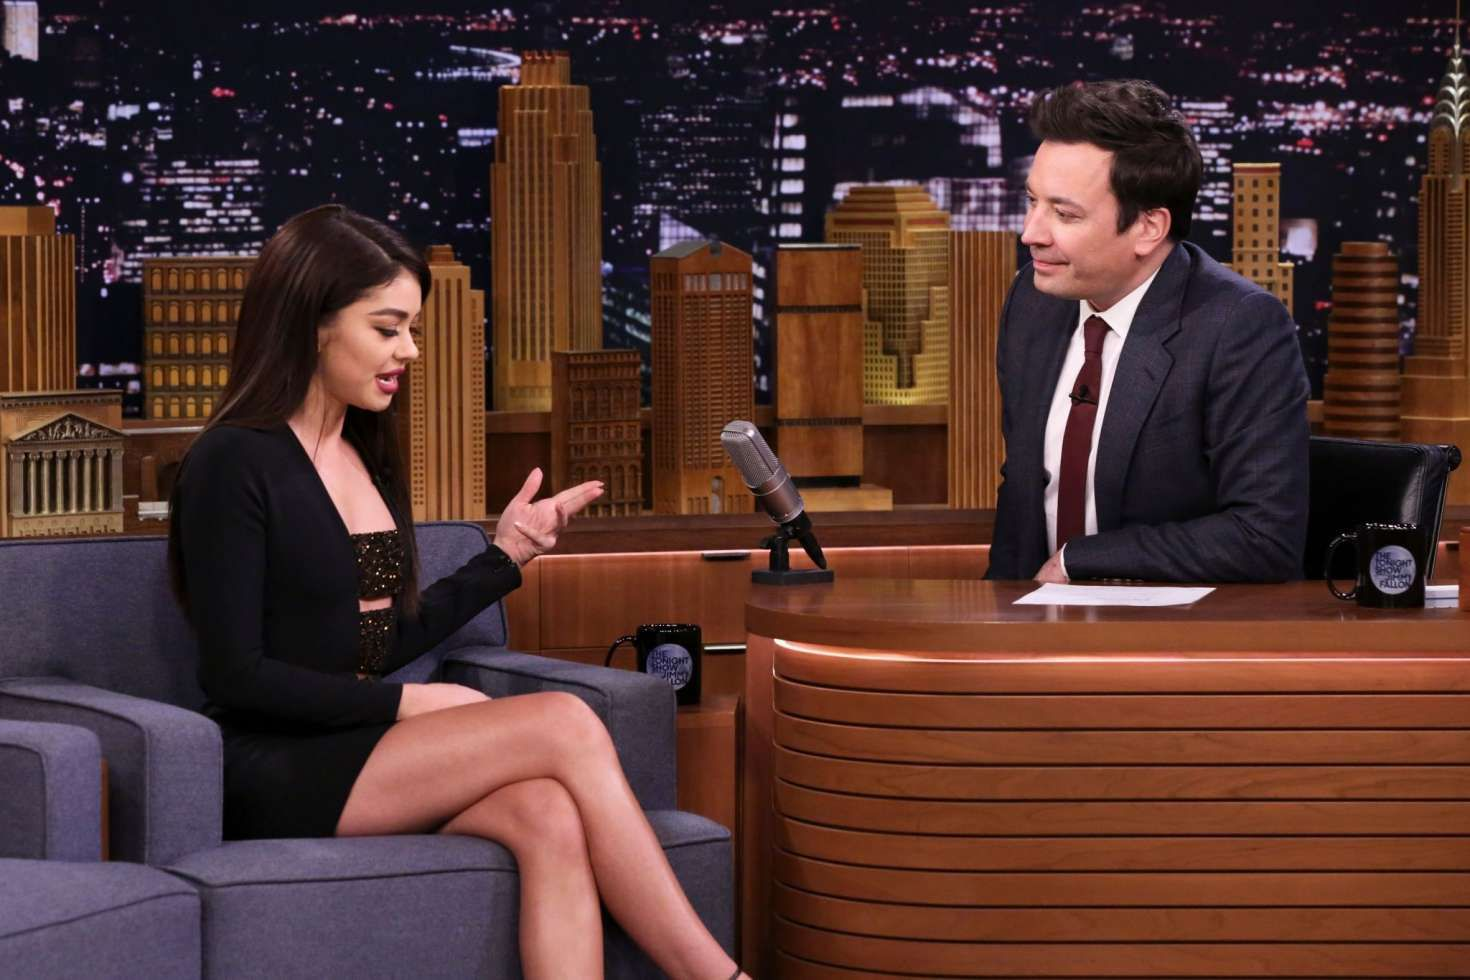 Sarah Hyland with Jimmy Fallon at the Tonight Show in New York, 2019